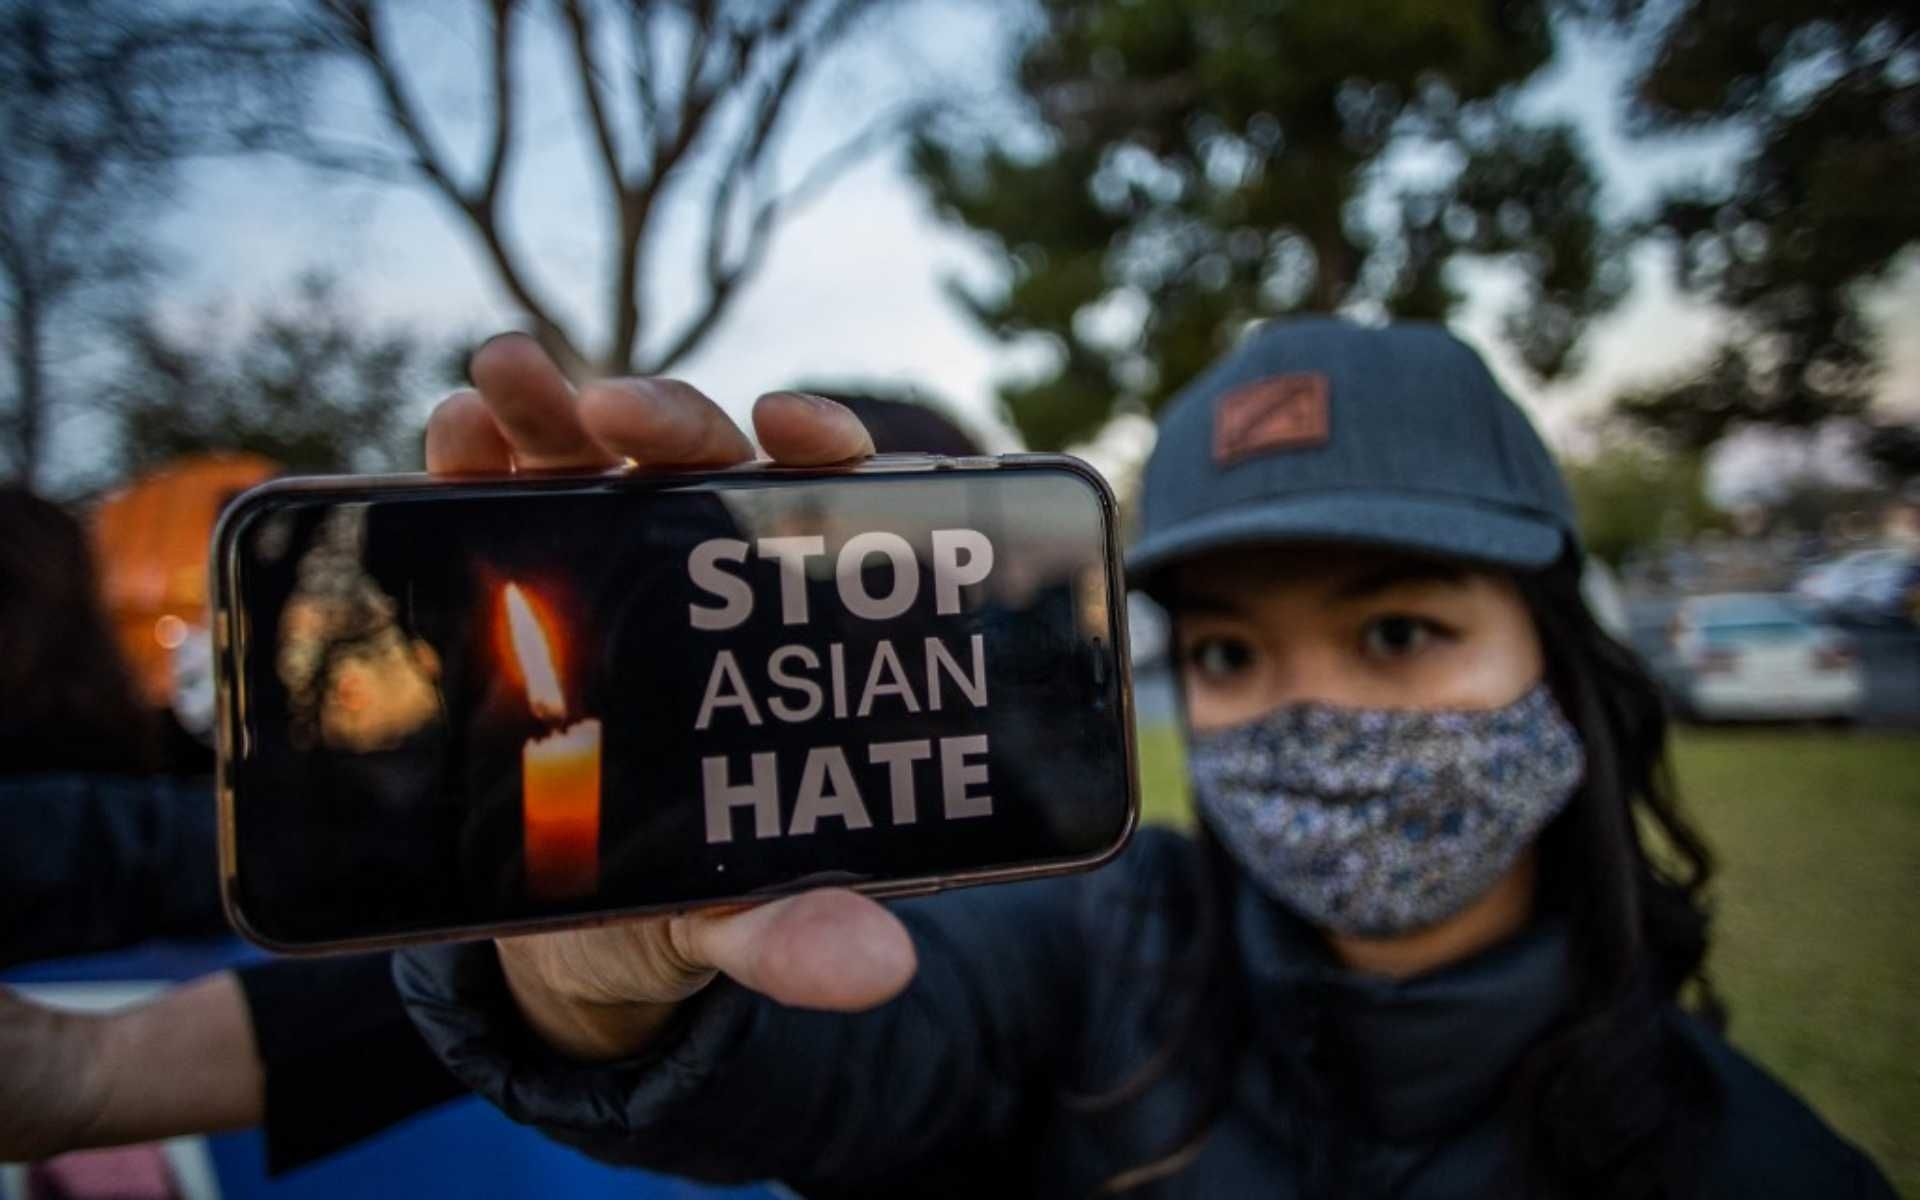 Julie Tran holds her phone during a candlelight vigil in Garden Grove, California, on March 17, 2021 to unite against the recent spate of violence targeting Asians and to express grief and outrage after yesterday's shooting that left eight people dead in Atlanta, Georgia, including at least six Asian women. - Police have said suspect Robert Aaron Long, a 21-year-old white man, has so far denied a racist motive for the three shootings in the southern US state of Georgia. (Photo by Apu GOMES / AFP)